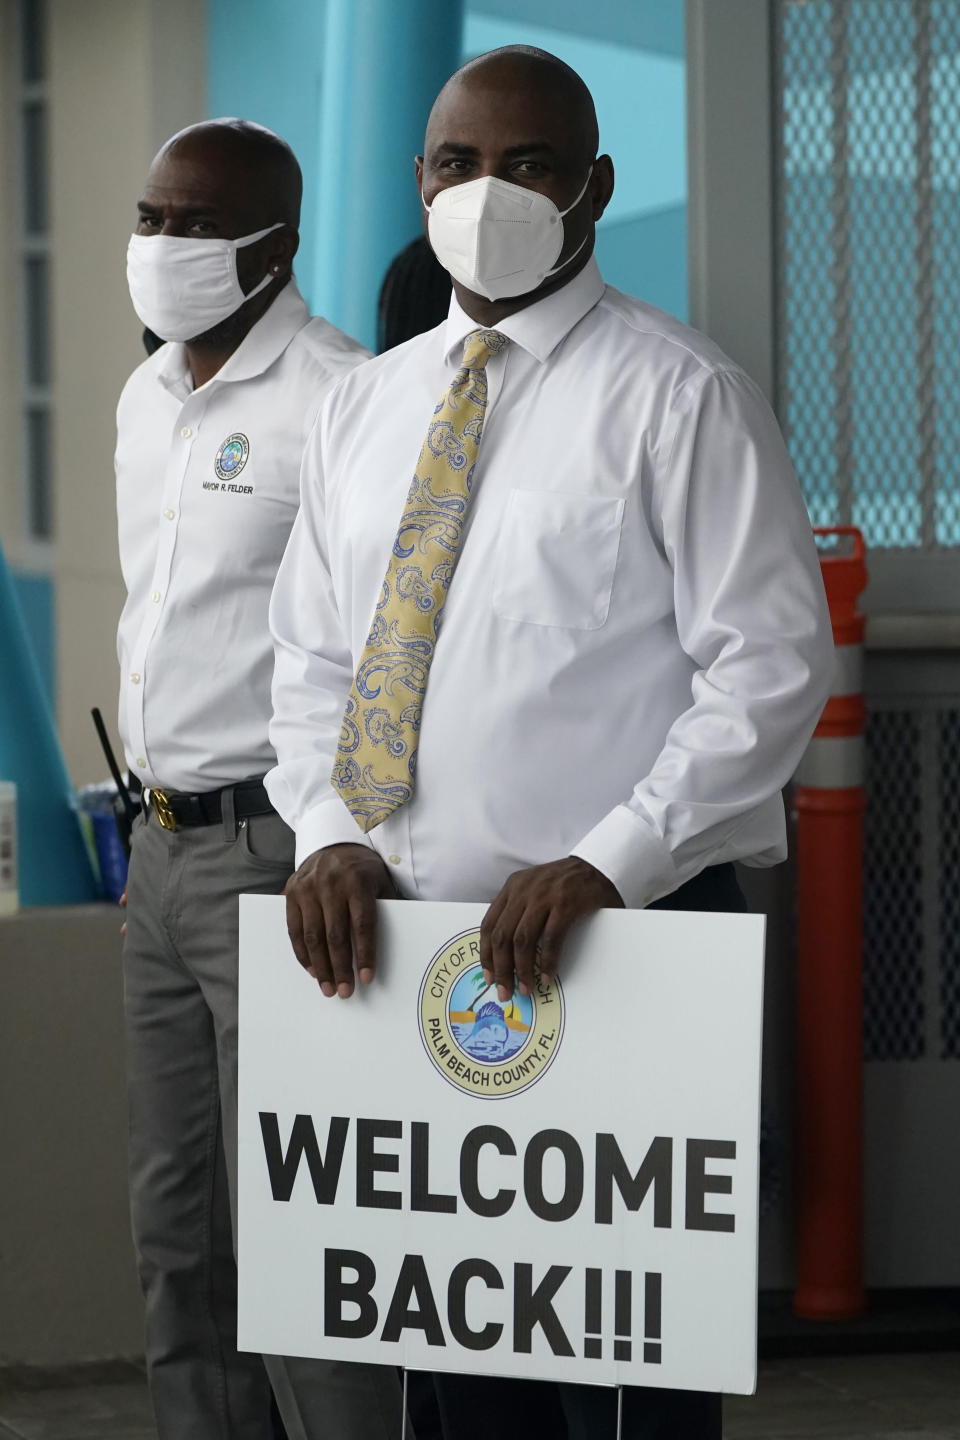 Riviera Beach, Fla. City Councilman Tradrick McCoy holds a sign welcoming students as he stands with Mayor Ronnie L. Felder, Tuesday, Aug. 10, 2021, during the first day of school at Washington Elementary School in Riviera Beach in Palm Beach County. (AP Photo/Wilfredo Lee)